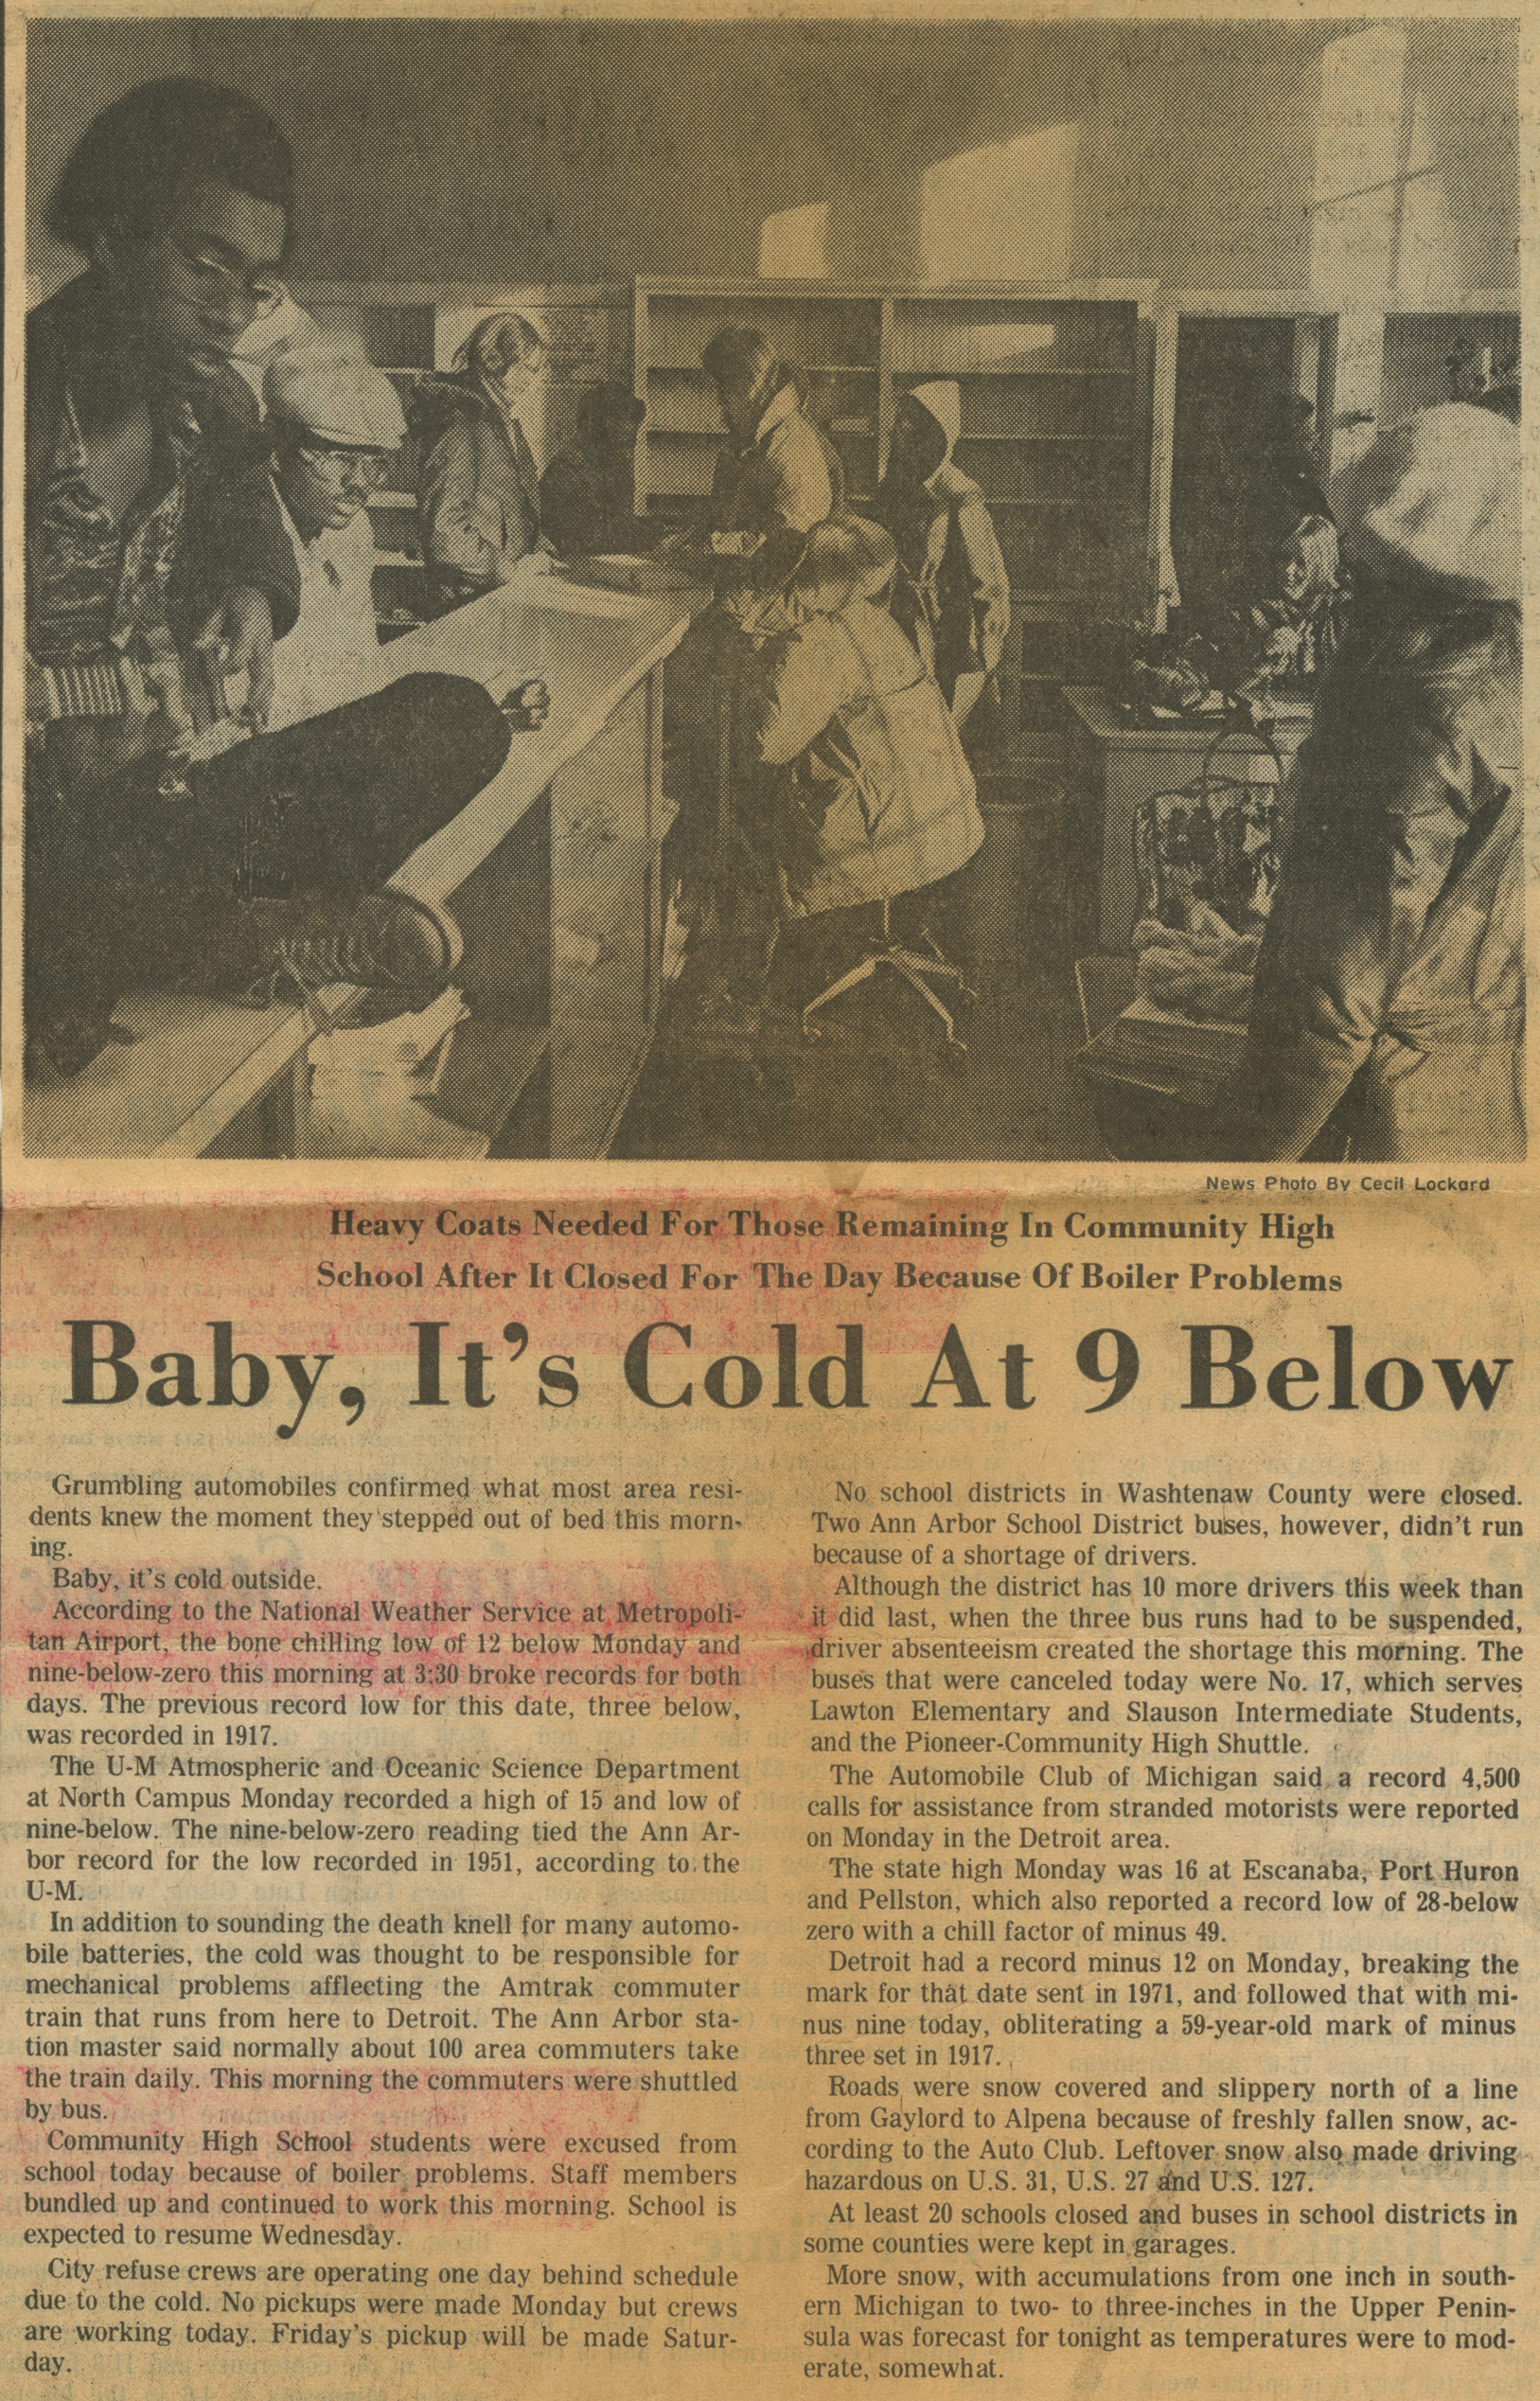 Baby, It's Cold At 9 Below image